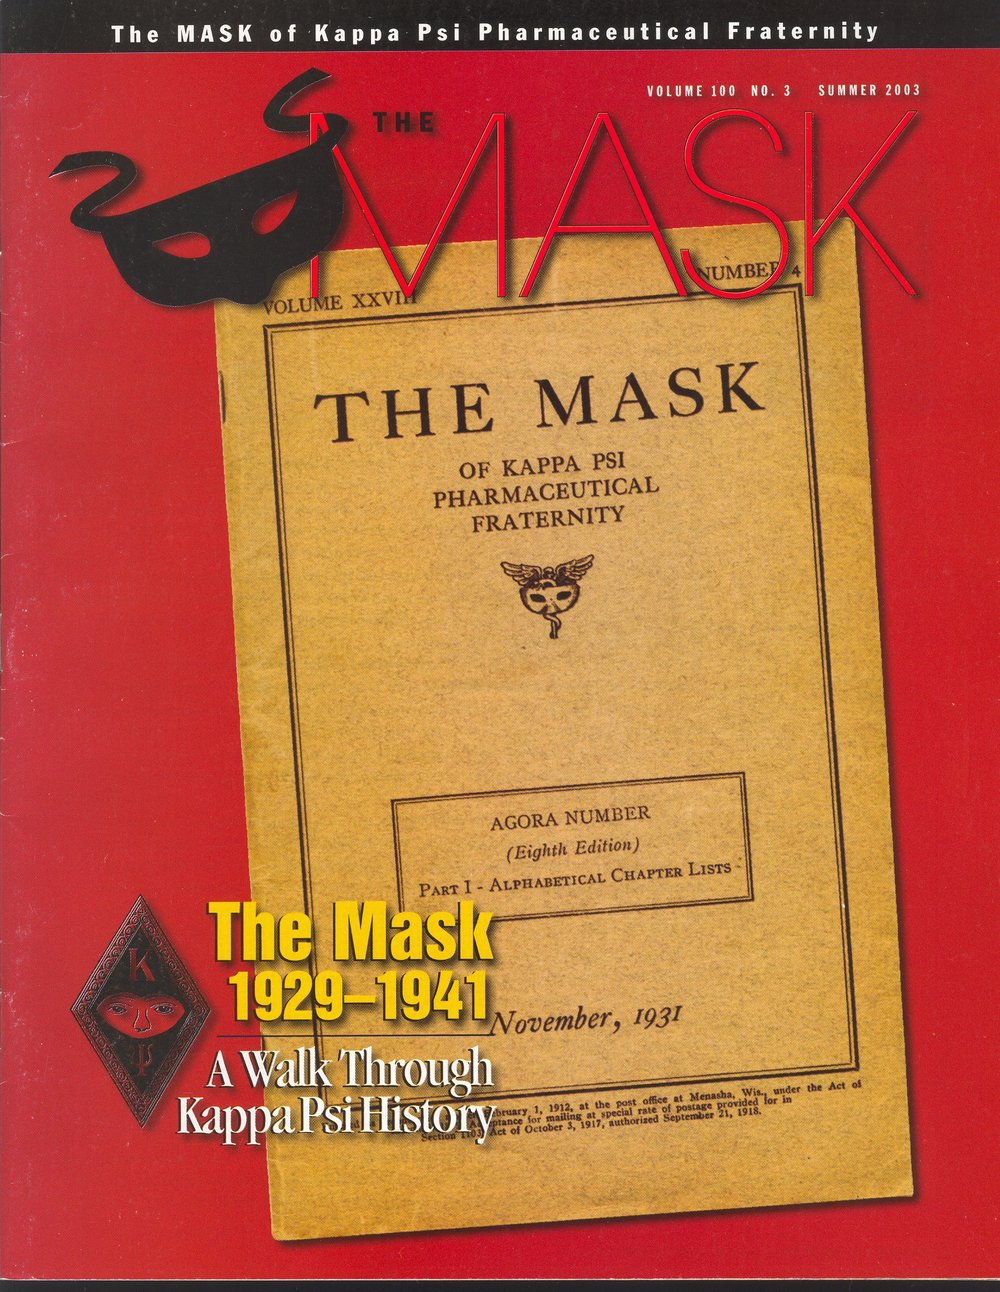 mask_cover_100-3_2003_sum.jpg